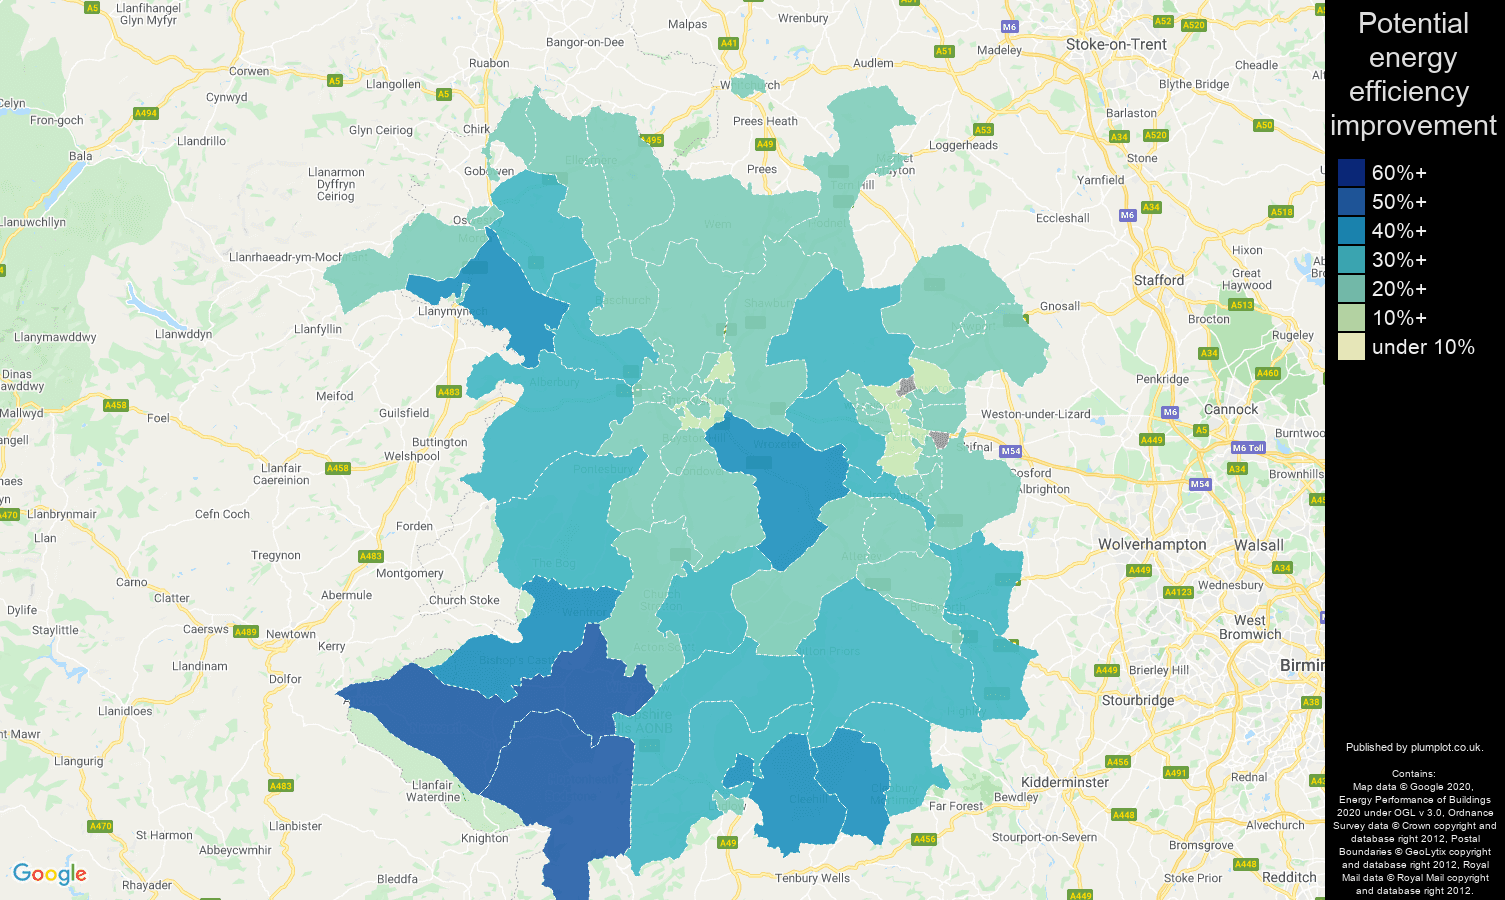 Shropshire map of potential energy efficiency improvement of houses